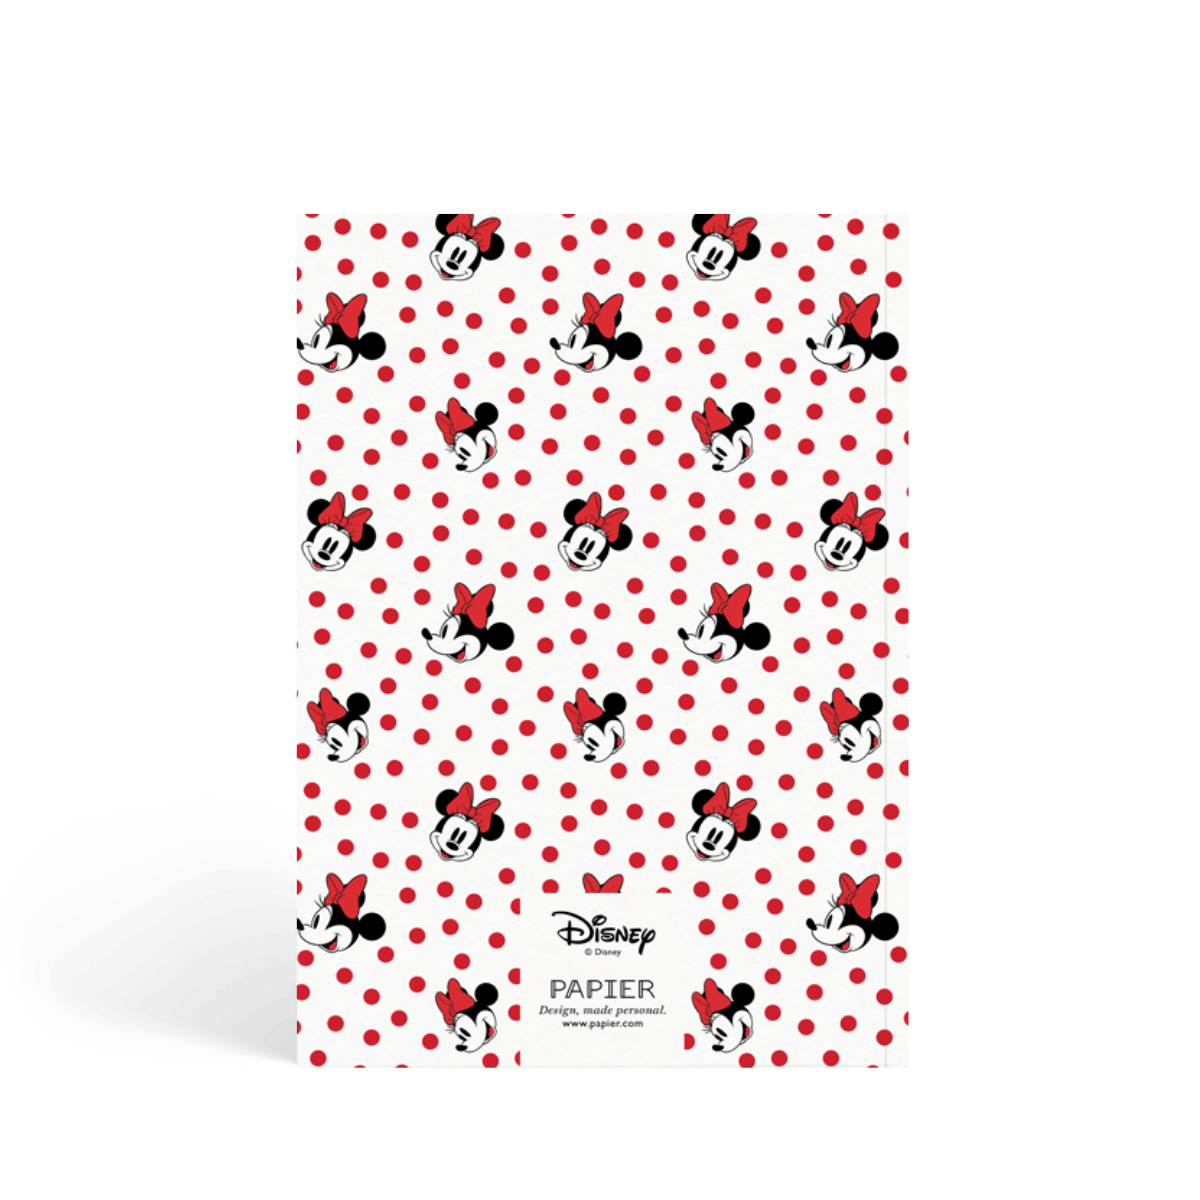 Https%3a%2f%2fwww.papier.com%2fproduct image%2f56028%2f5%2fminnie mouse 13461 back 1570128827.png?ixlib=rb 1.1